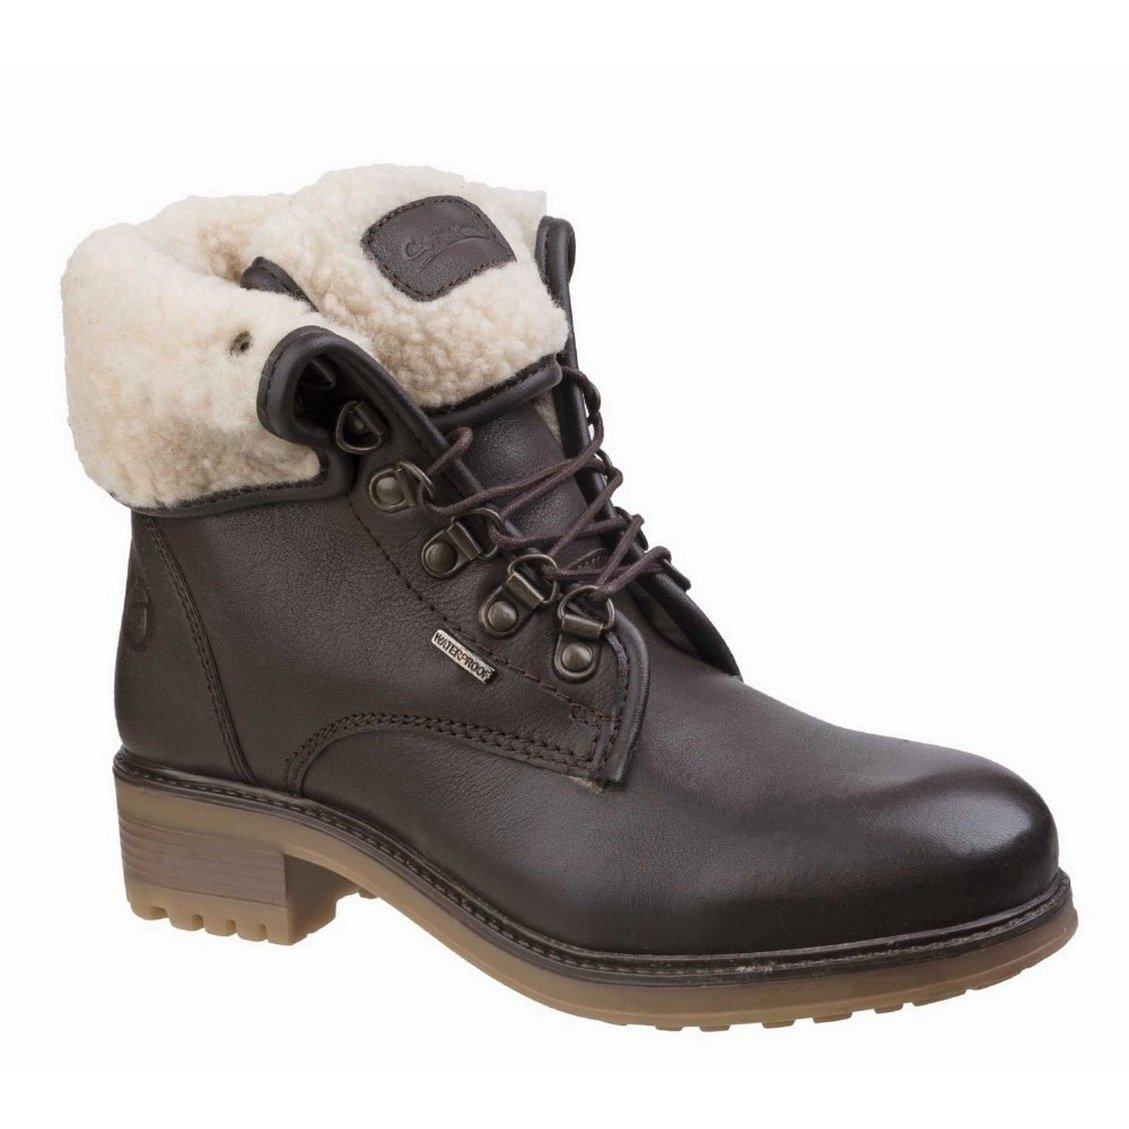 534c8263574 Cotswold Womens/Ladies Asthall Waterproof Boots (9 UK) (Black ...